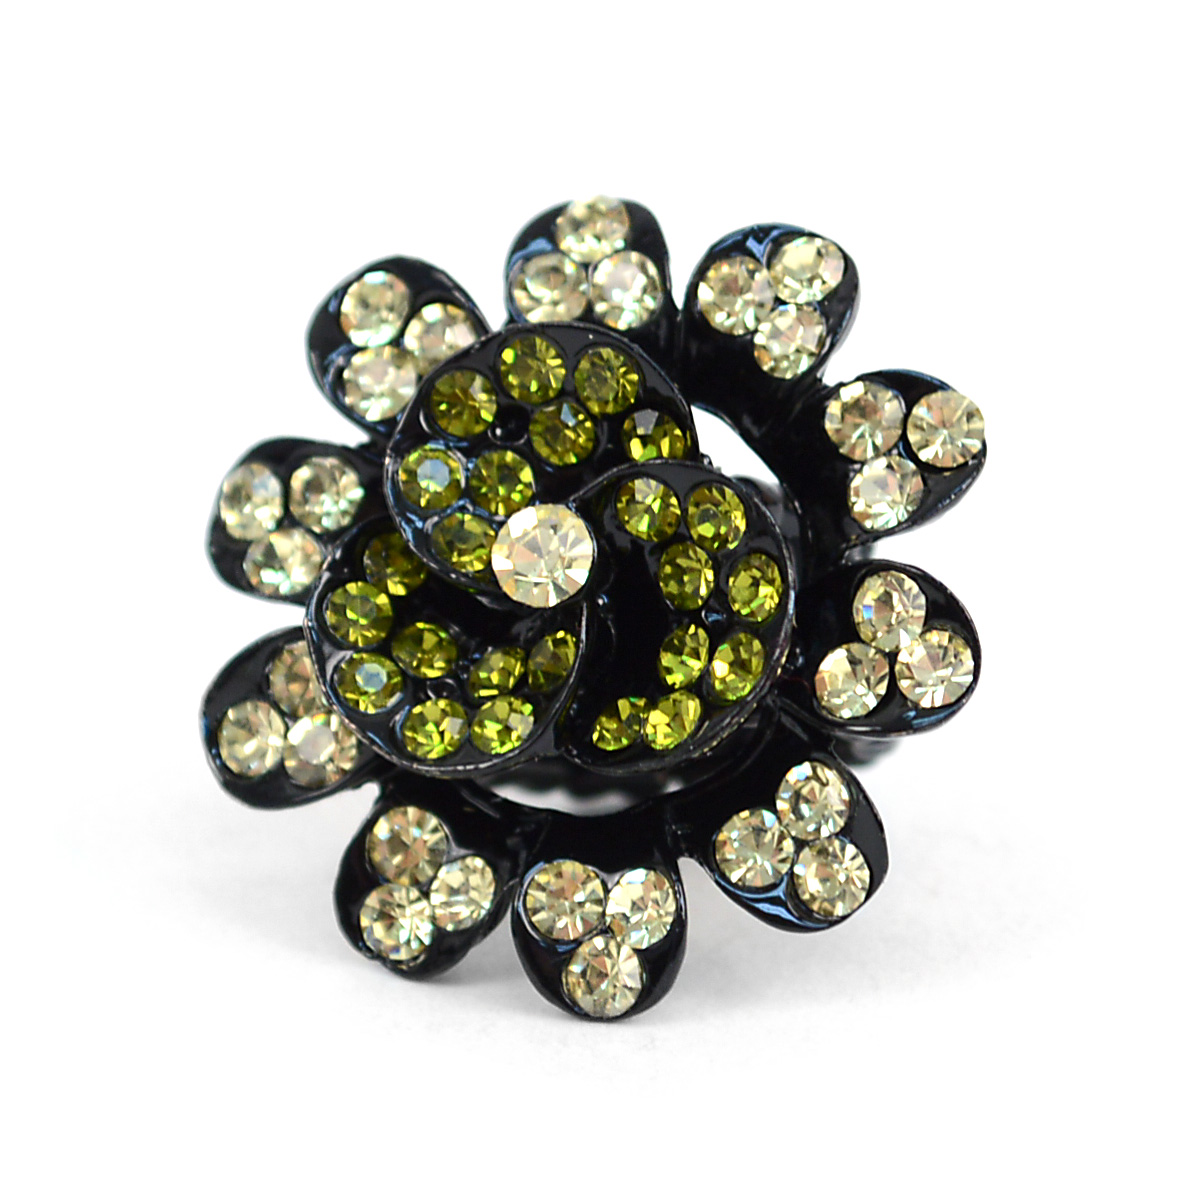 STRETCH RING Clover - IMJS0664